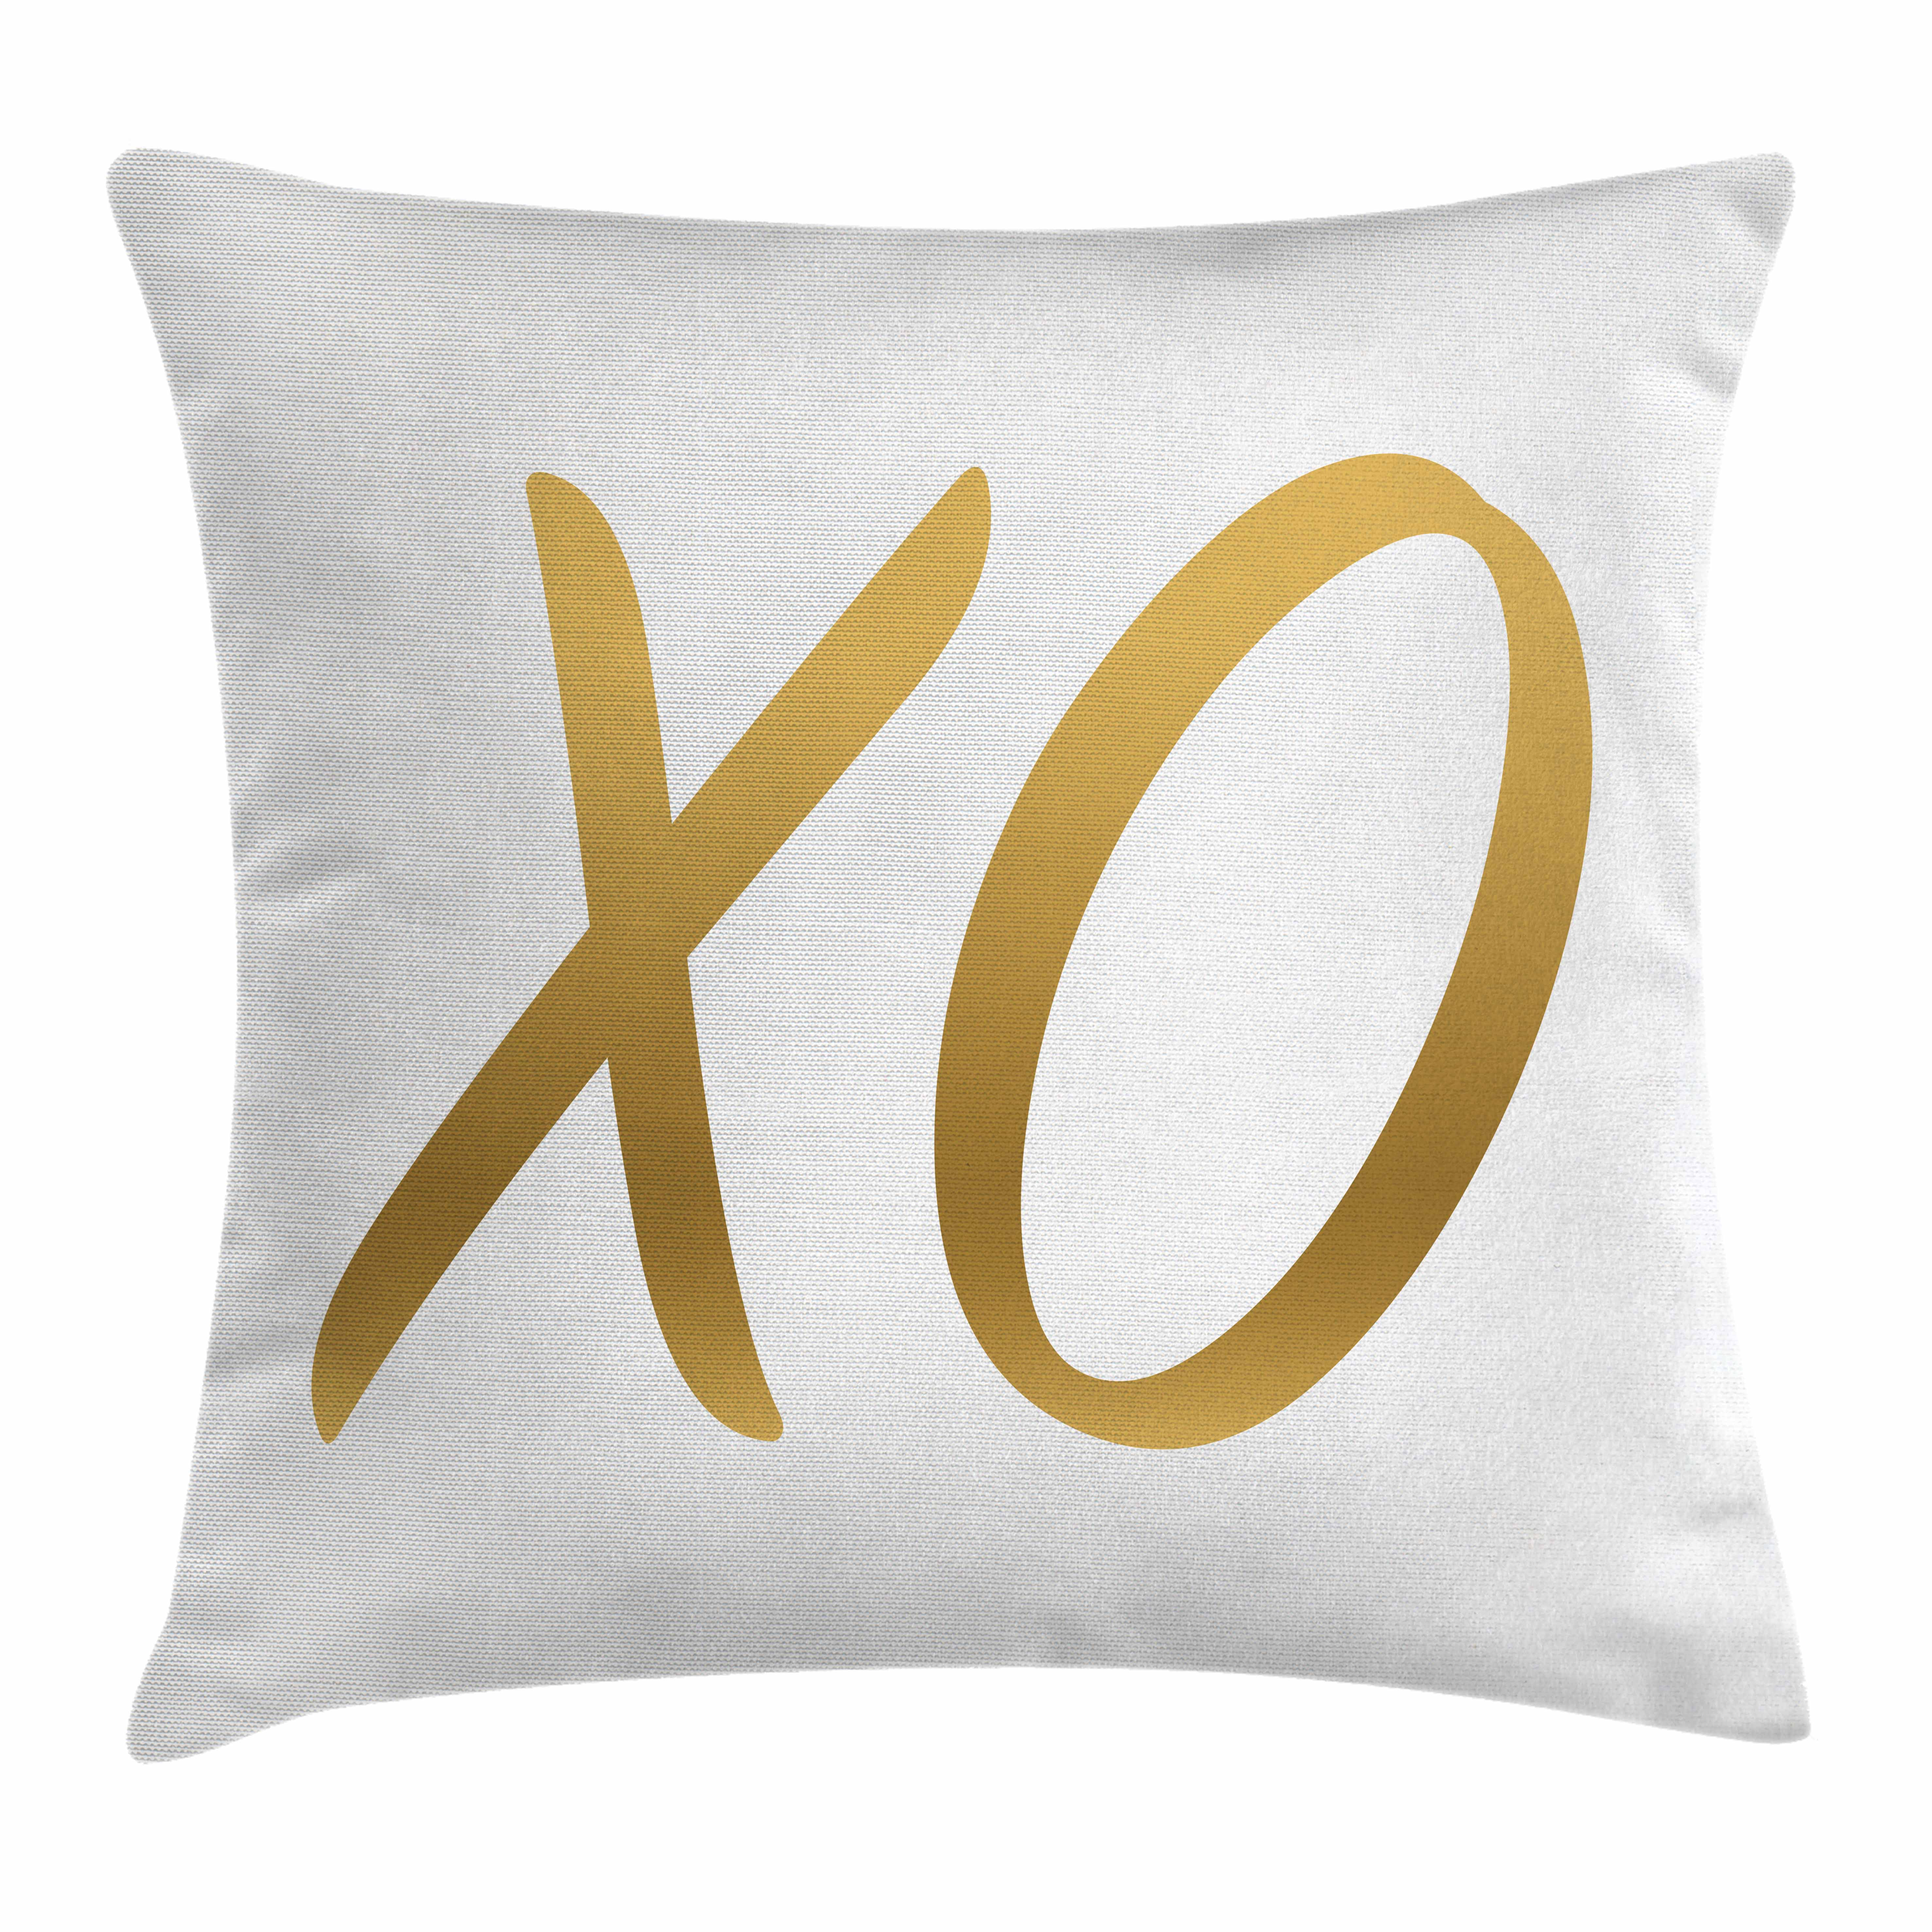 Xo Decor Throw Pillow Cushion Cover, Love Affection Happy Joyful Good Friendship Romance Sign Letters Artistic Design, Decorative Square Accent Pillow Case, 24 X 24 Inches, Gold White, by Ambesonne